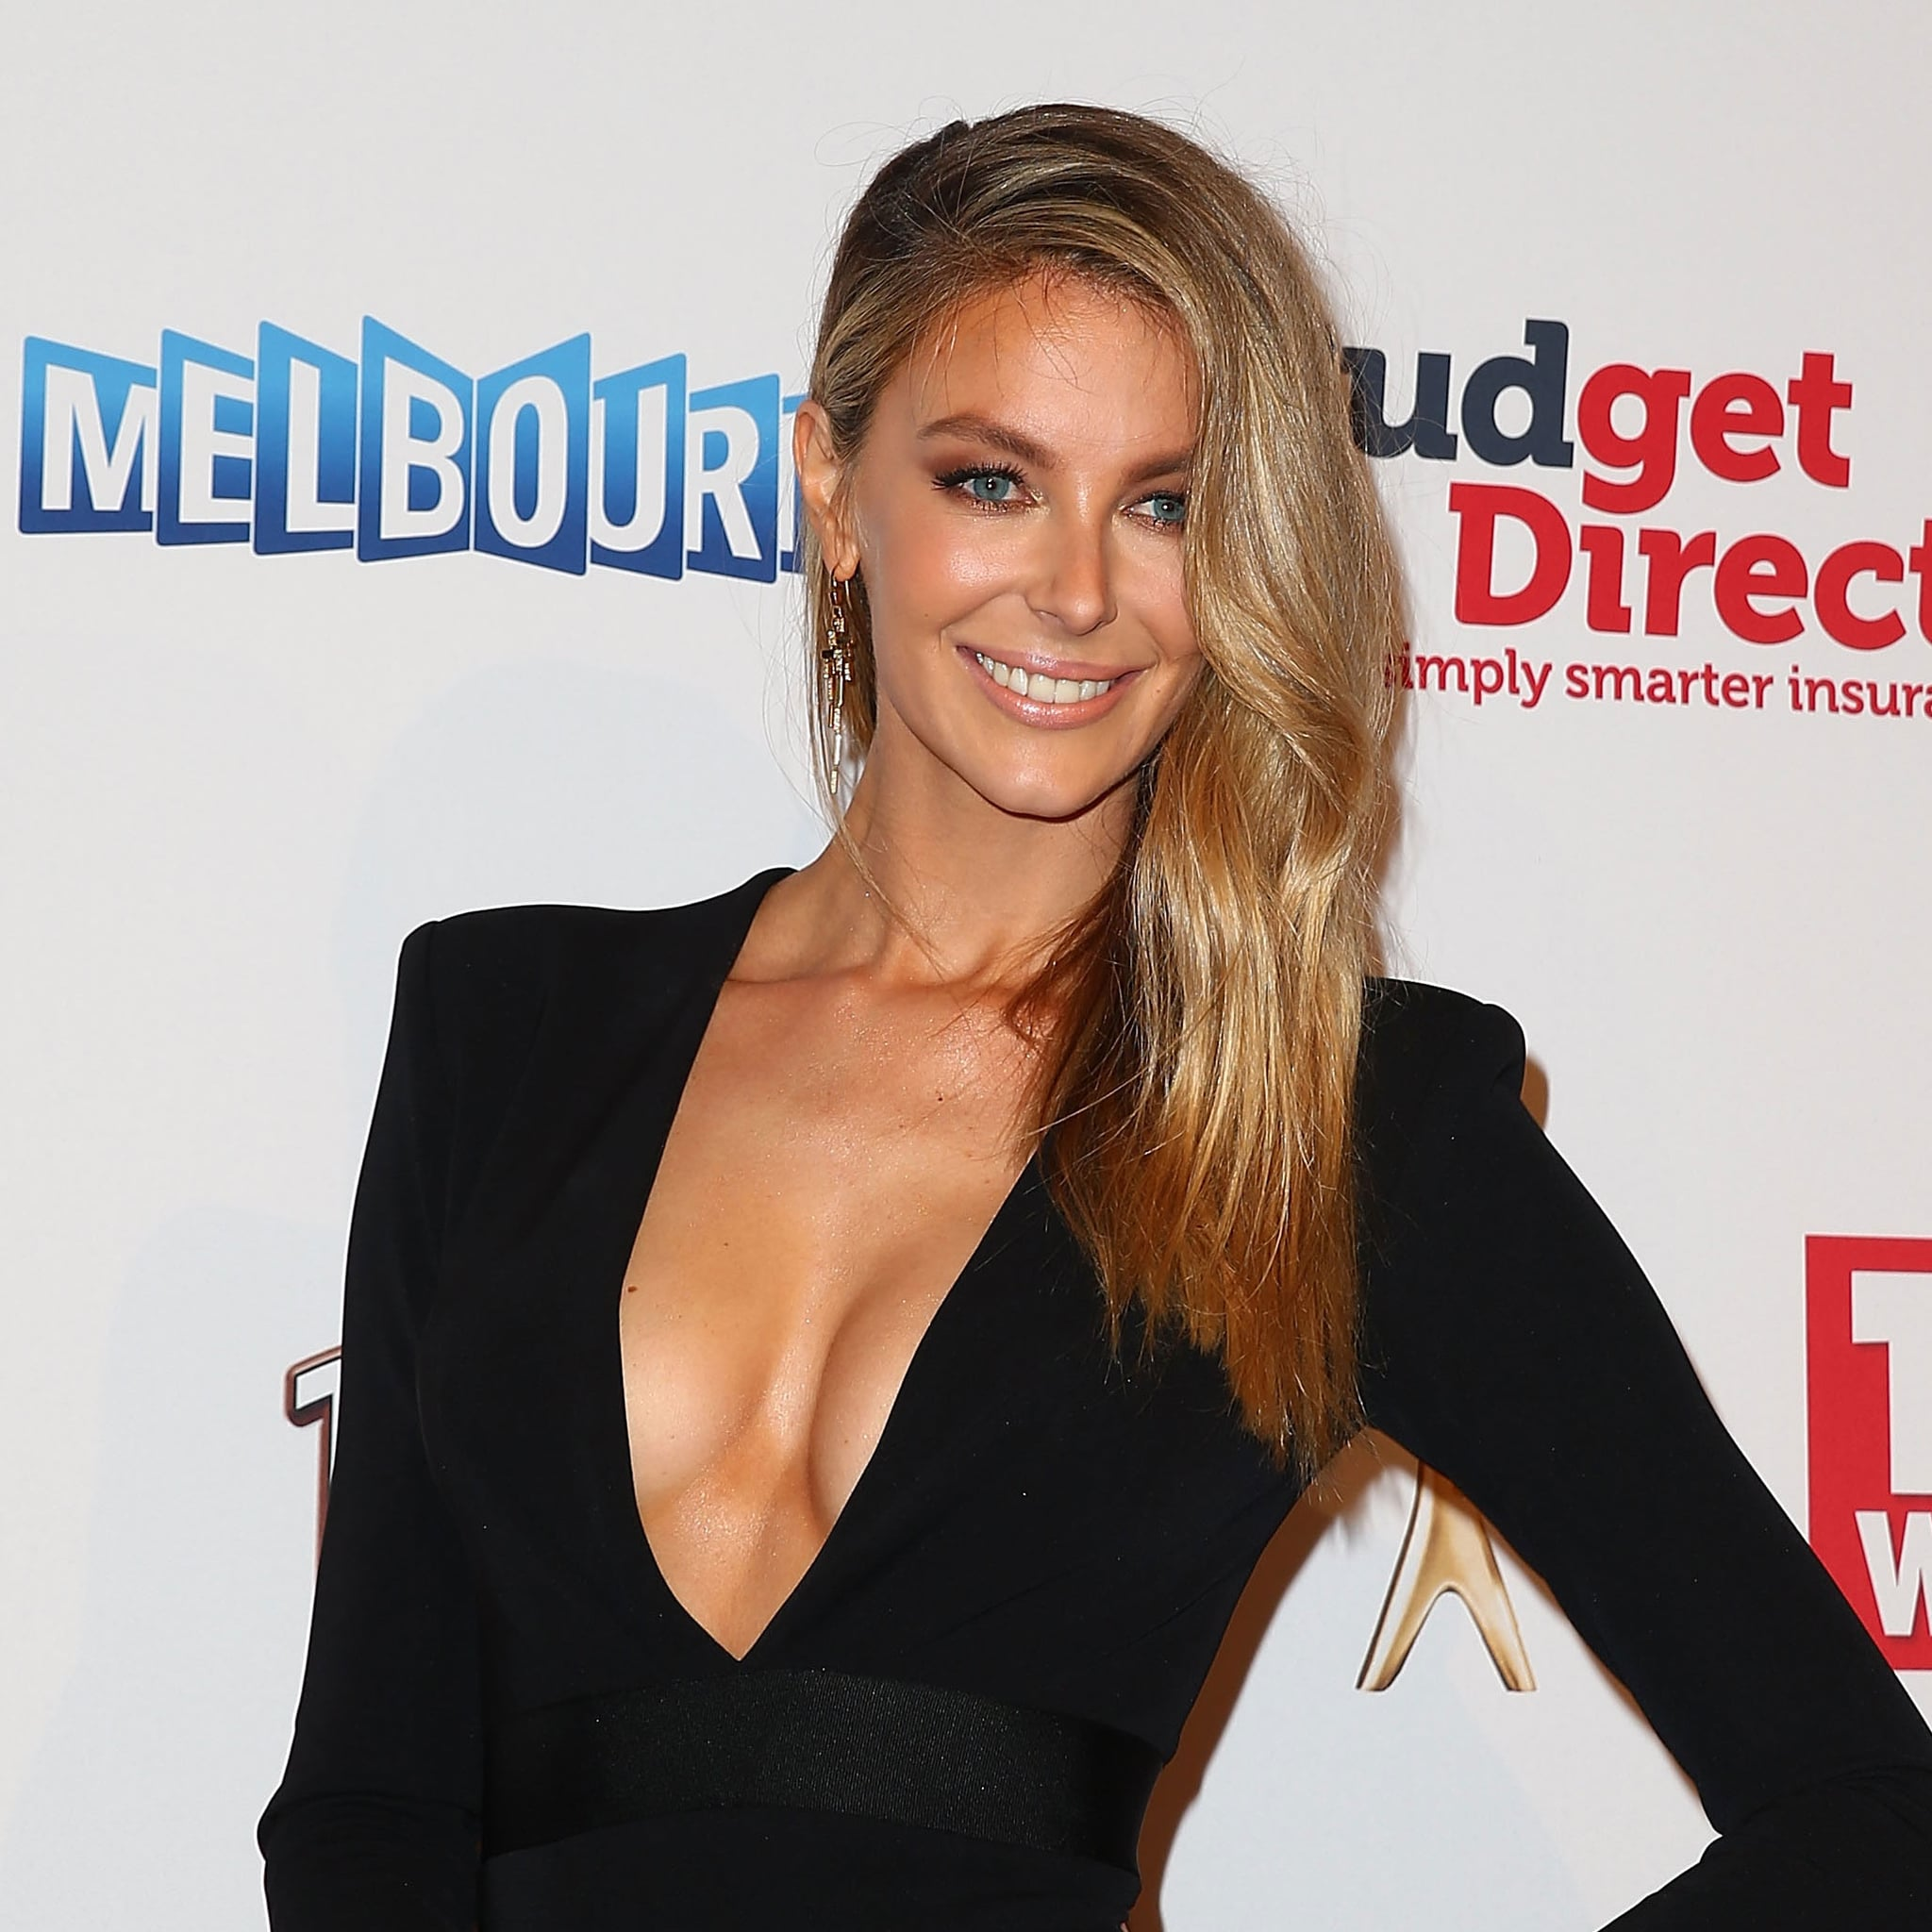 Young Jennifer Hawkins nudes (24 photo), Pussy, Hot, Twitter, cameltoe 2018